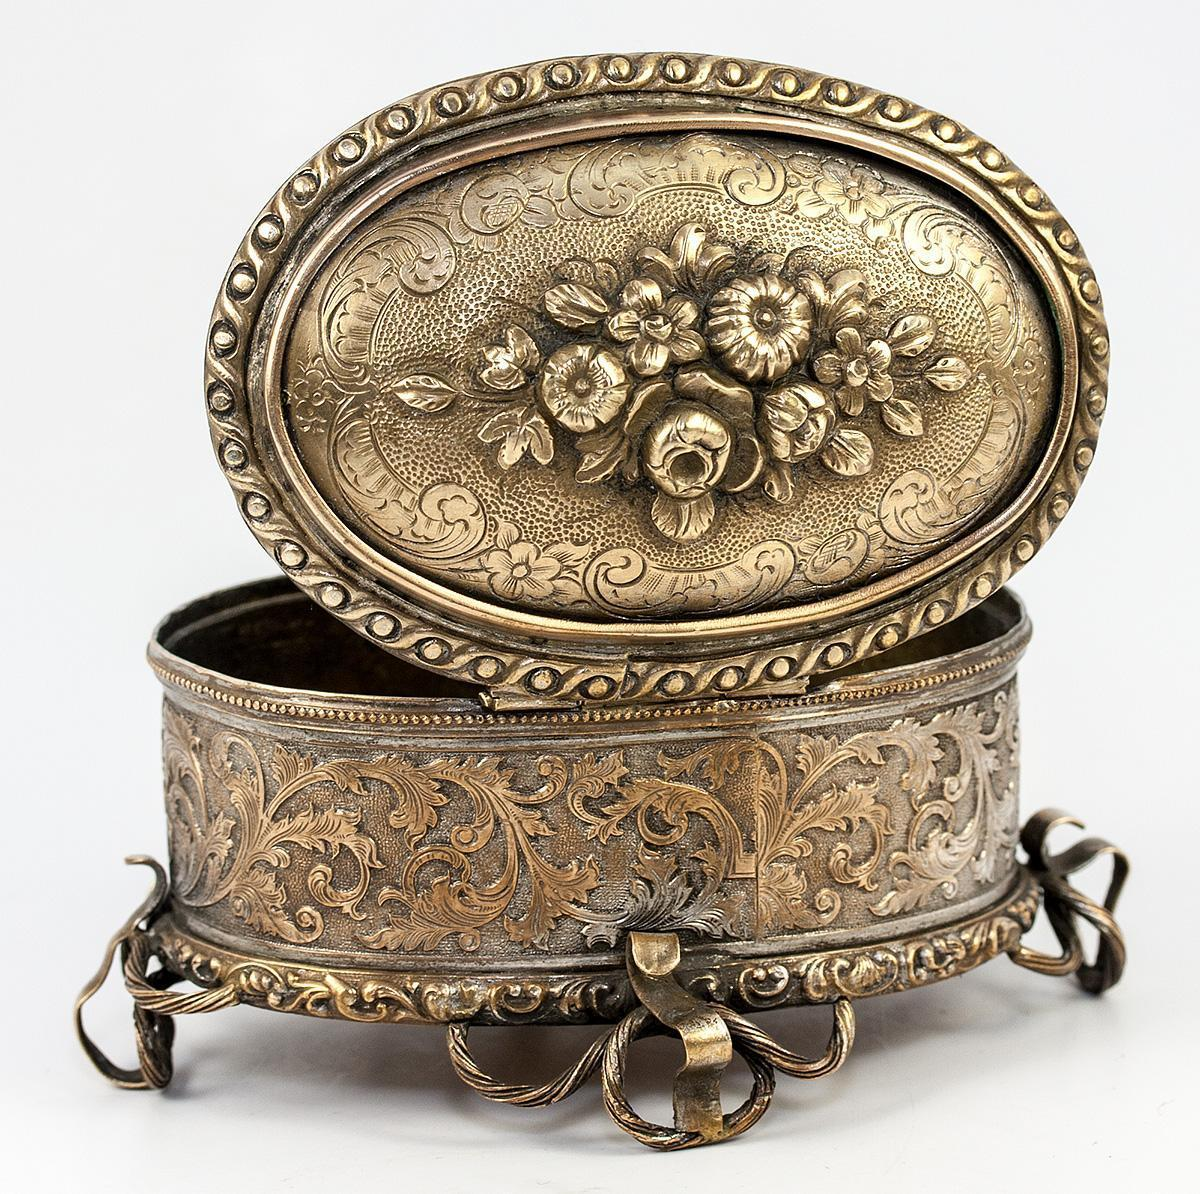 Antique Italian or French Jewelry Casket, 19th c. Box, Acid Intaglio Etched Design